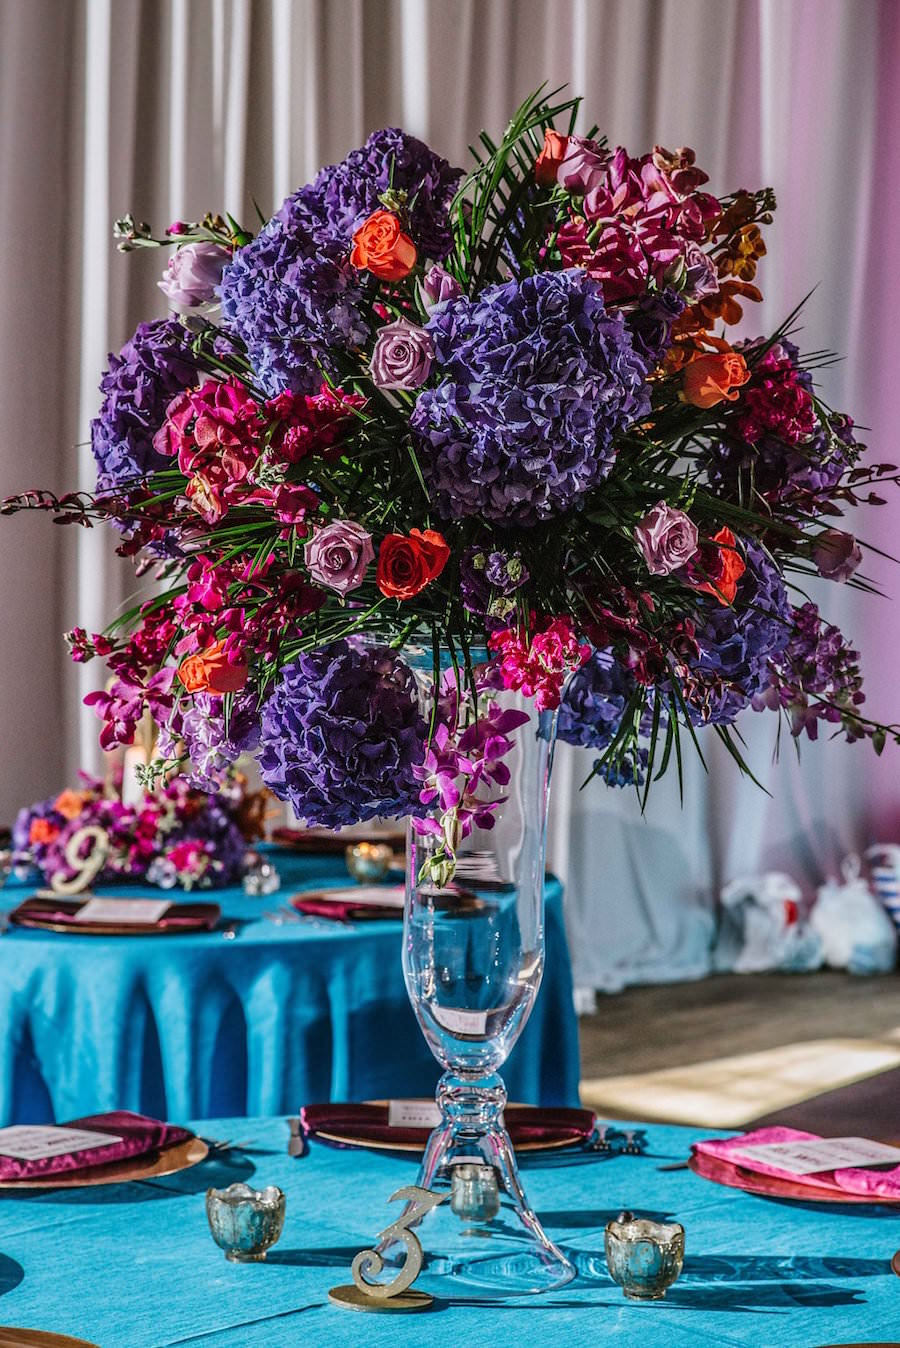 Tall Purple Orange And Magenta Wedding Centerpiece Flowers In Glass